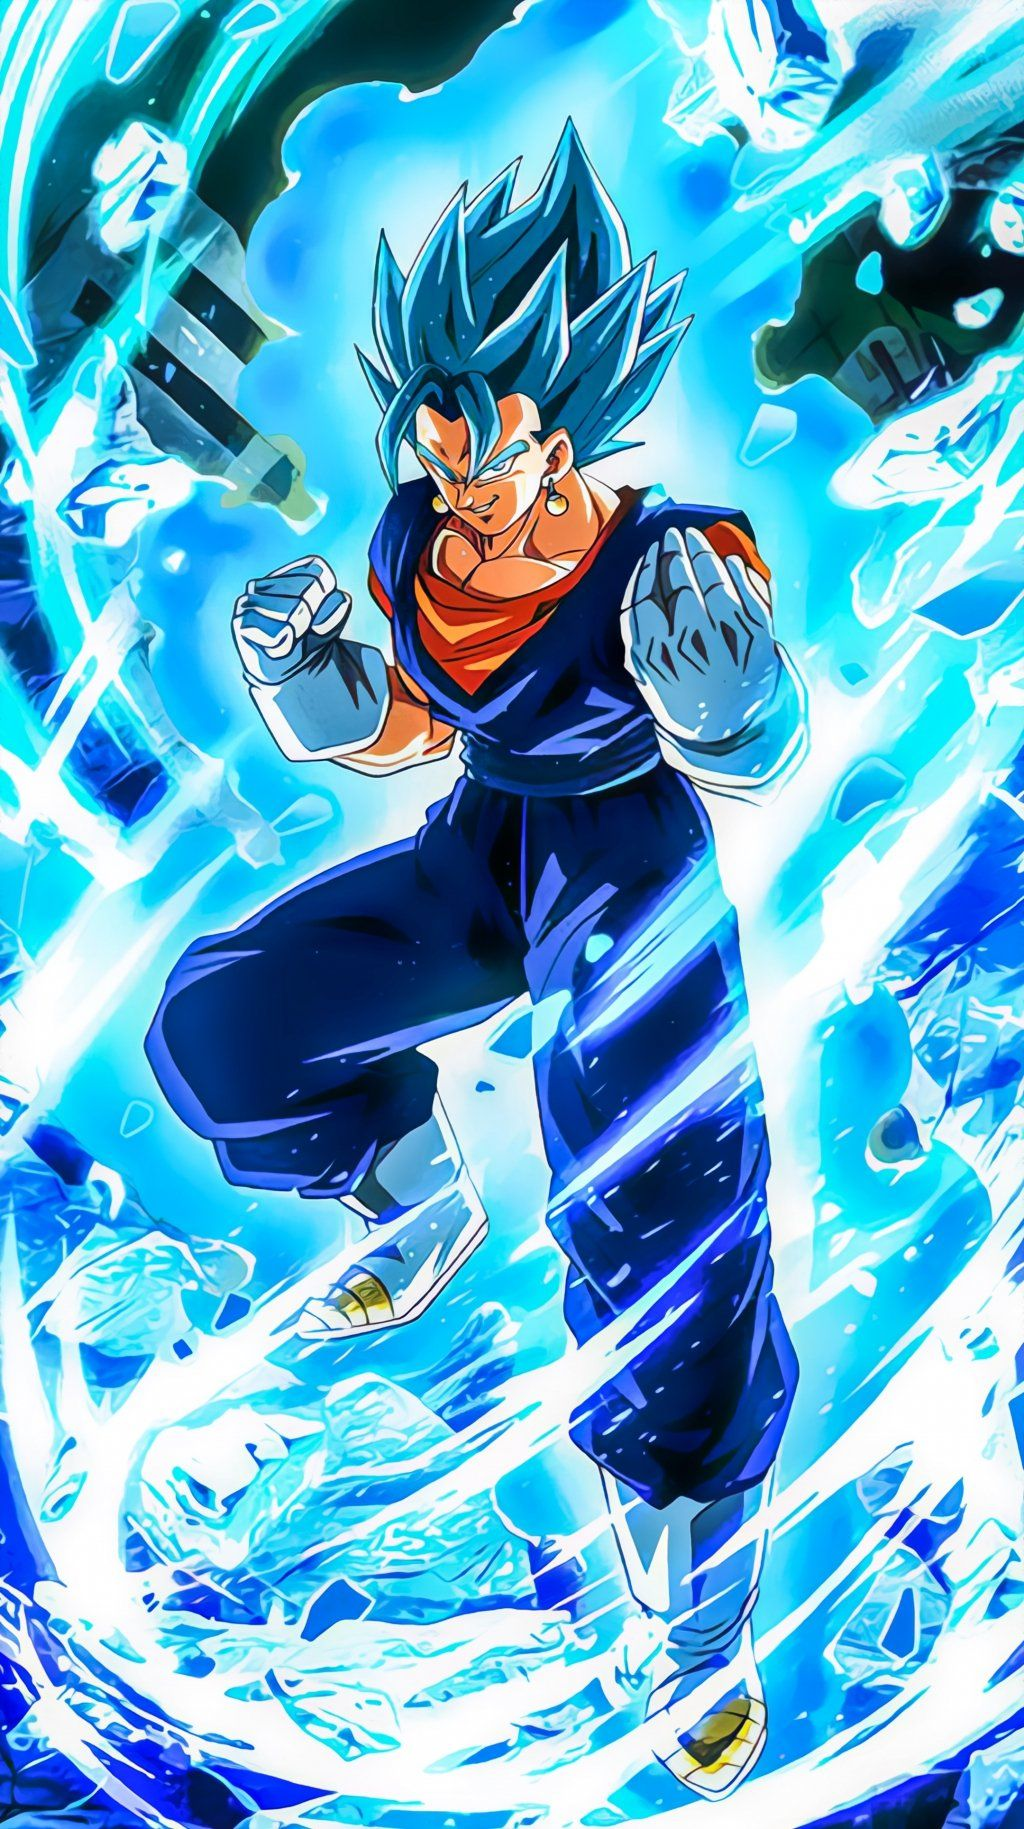 Top 8 Dbz Super Vegetto 4k Vertical Wallpapers In 2020 Anime Dragon Ball Super Dragon Ball Super Manga Dragon Ball Goku